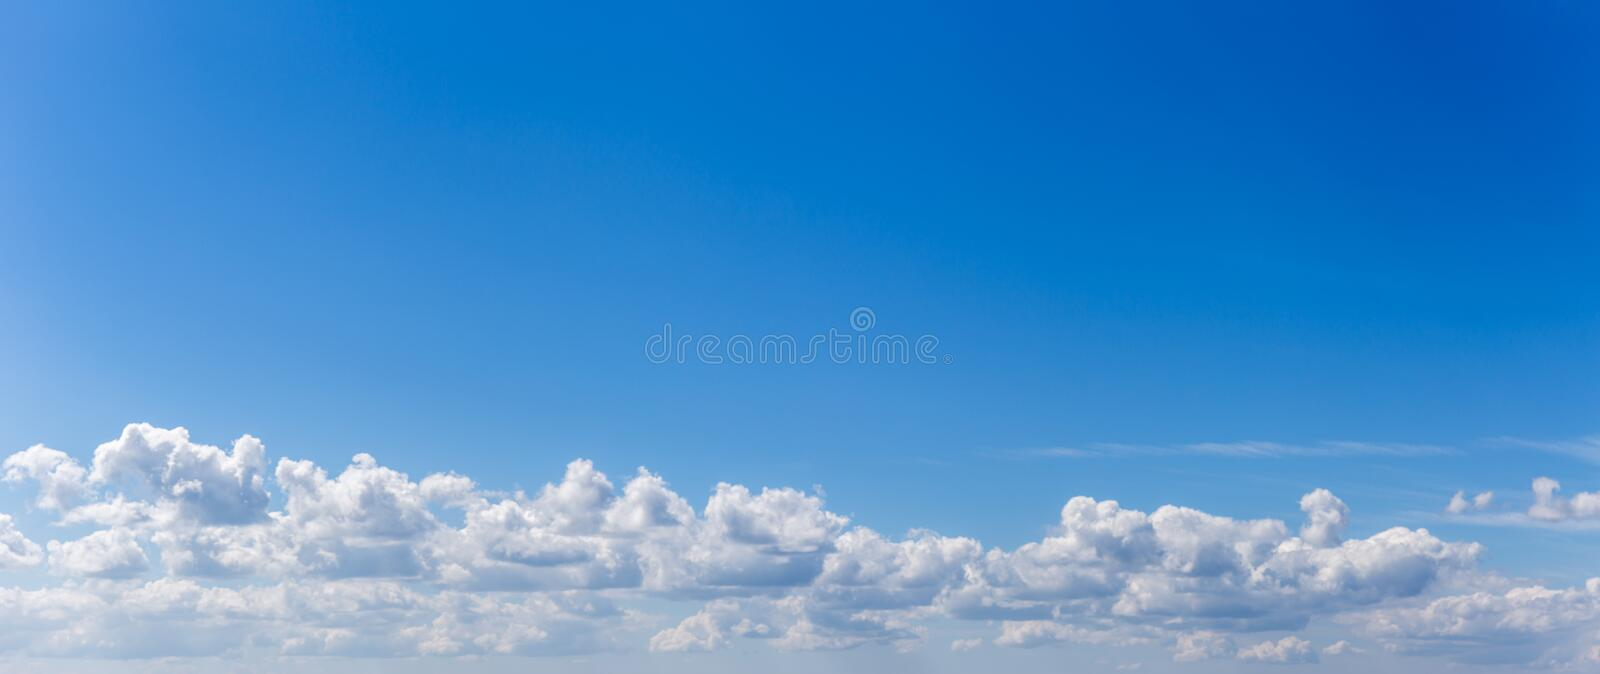 Panorama or panoramic photo of blue sky and clouds or cloudscape. stock photo